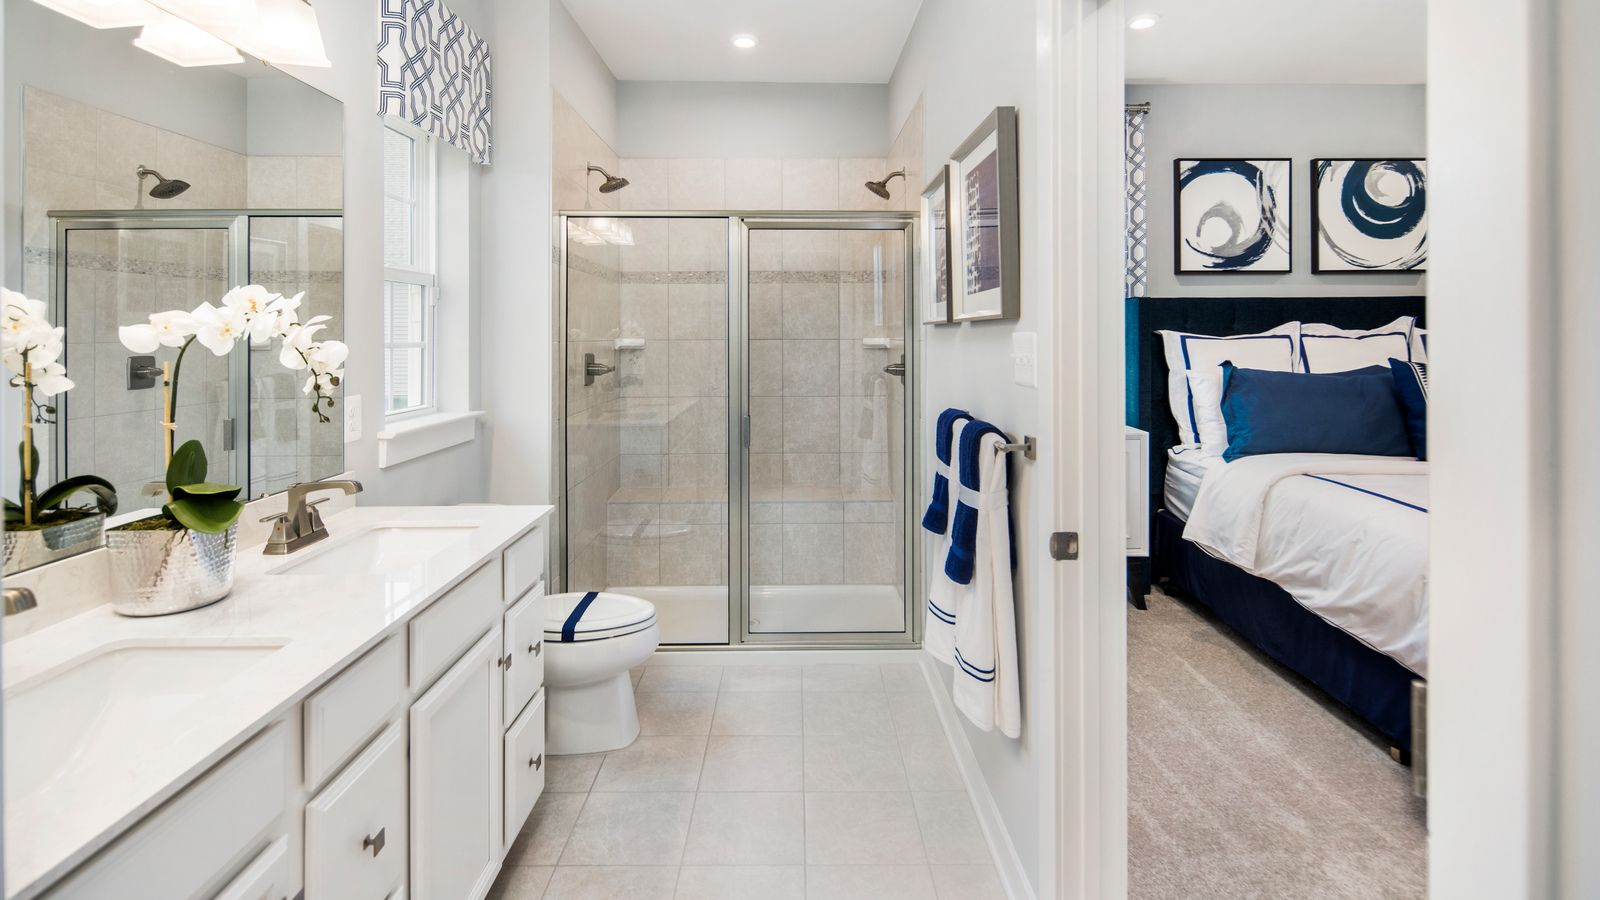 Bathroom featured in the Ashbrooke By Ryan Homes in Cleveland, OH